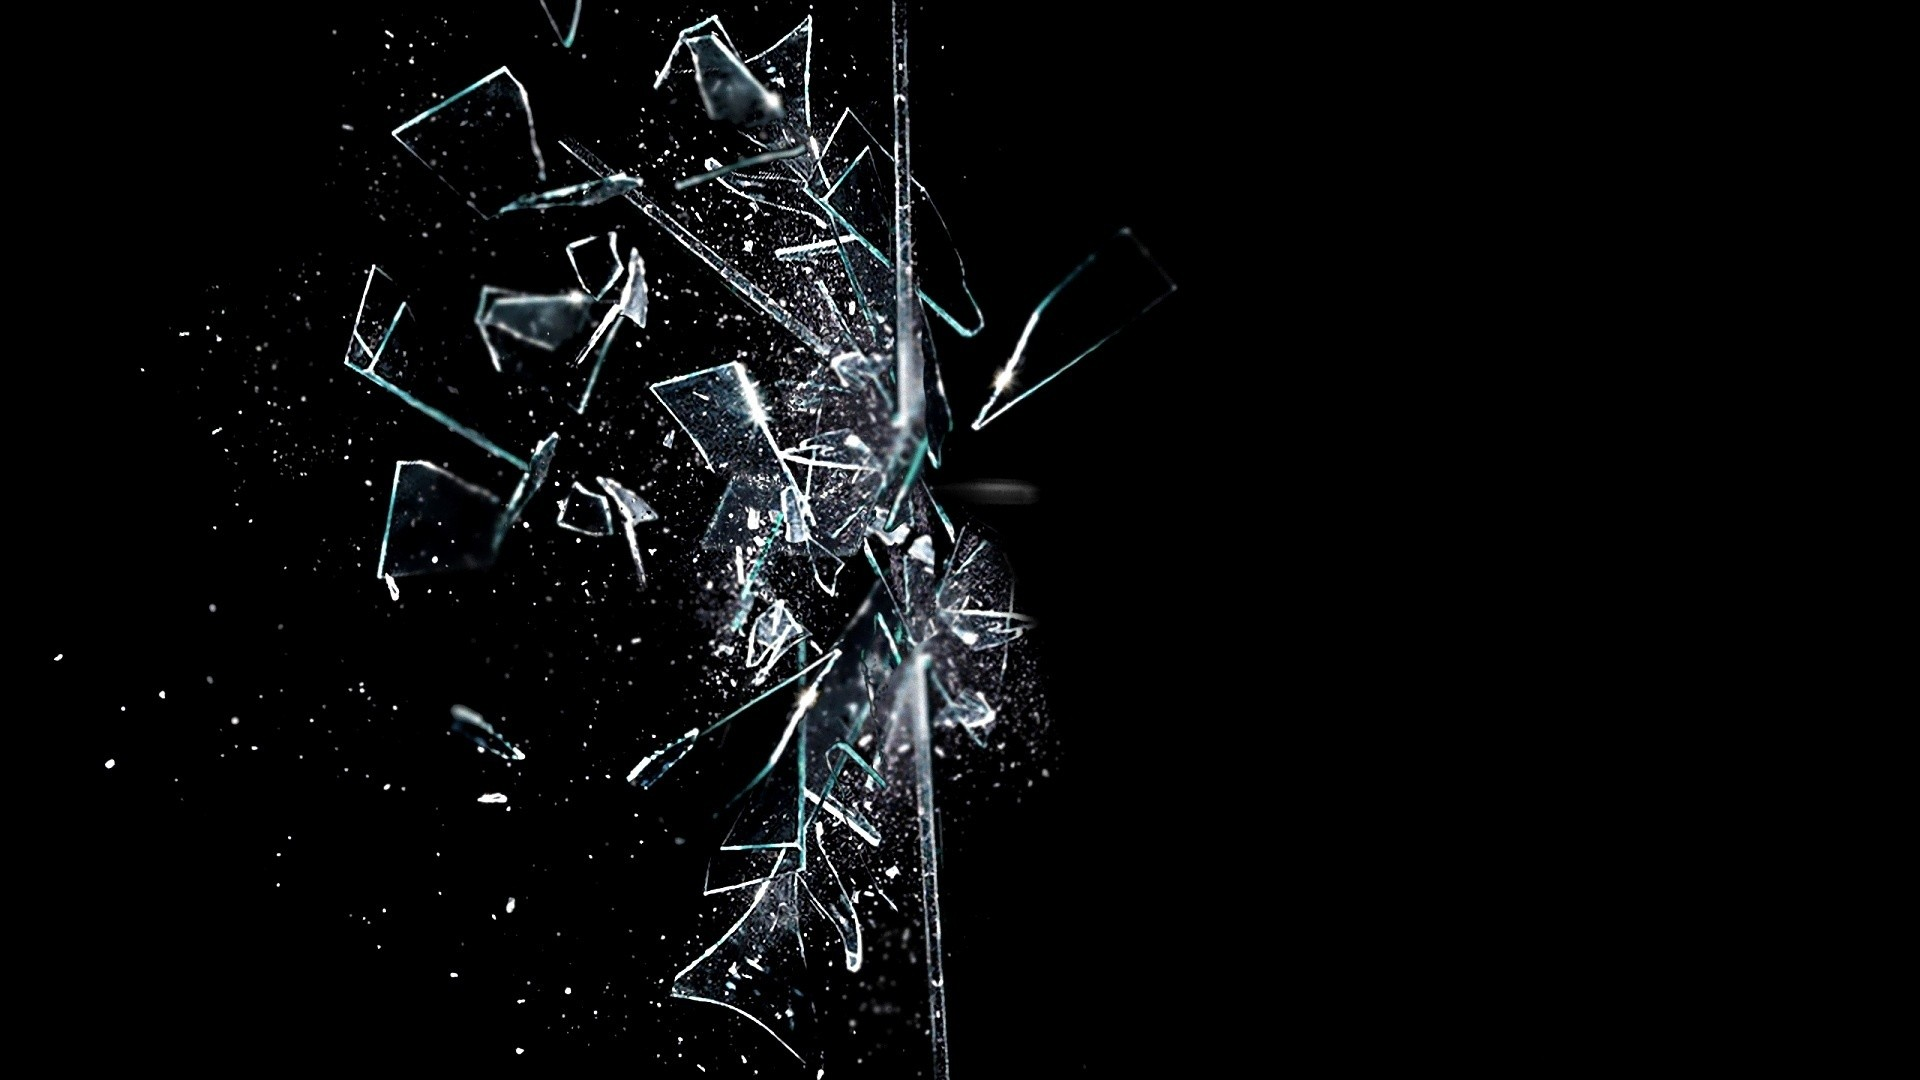 Broken Glass Backgrounds, Compatible - PC, Mobile, Gadgets| 1920x1080 px